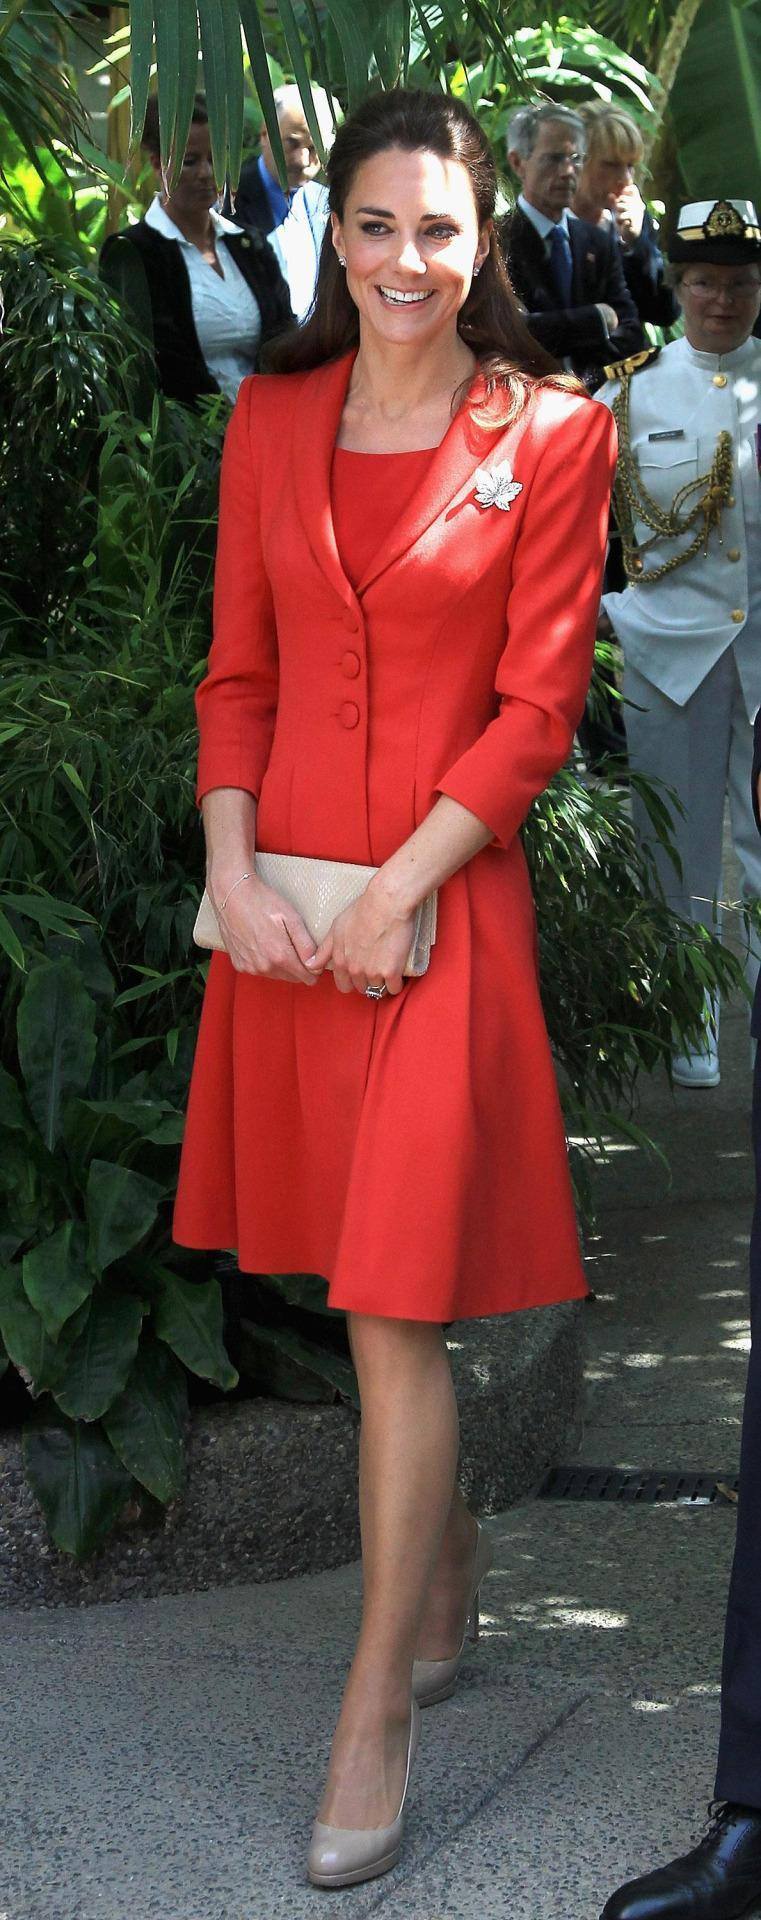 <p>Kate said goodbye to Canada in a red Catherine Walker ensemble paired with L.K. Bennett heels and clutch.</p><p><i>[Photo: PA]</i></p>